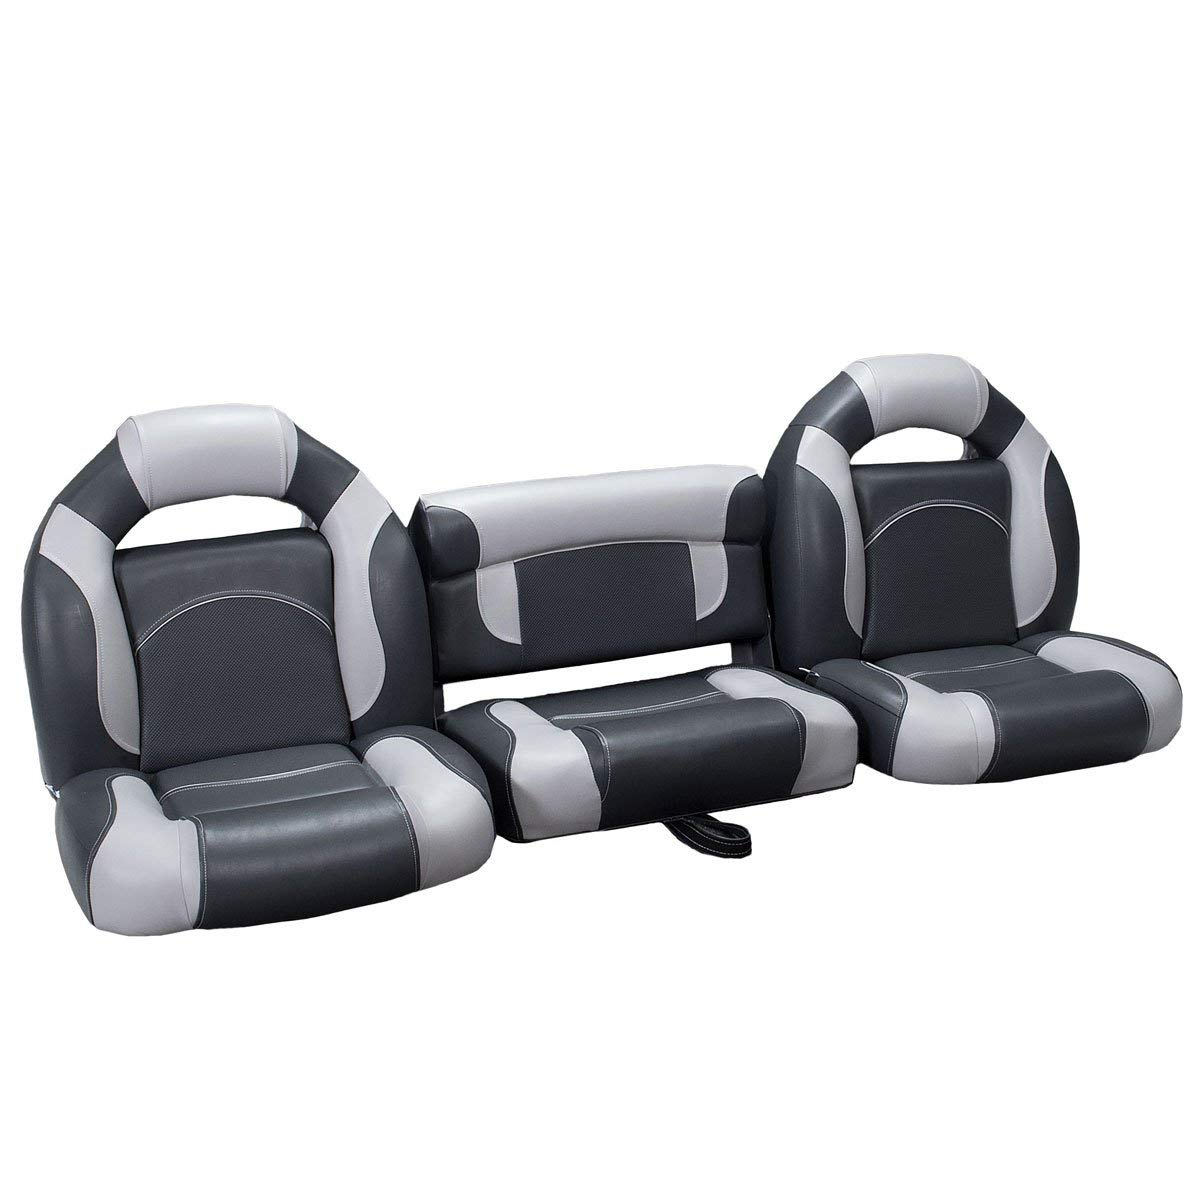 Cheap Bass Boat Seats, find Bass Boat Seats deals on line at